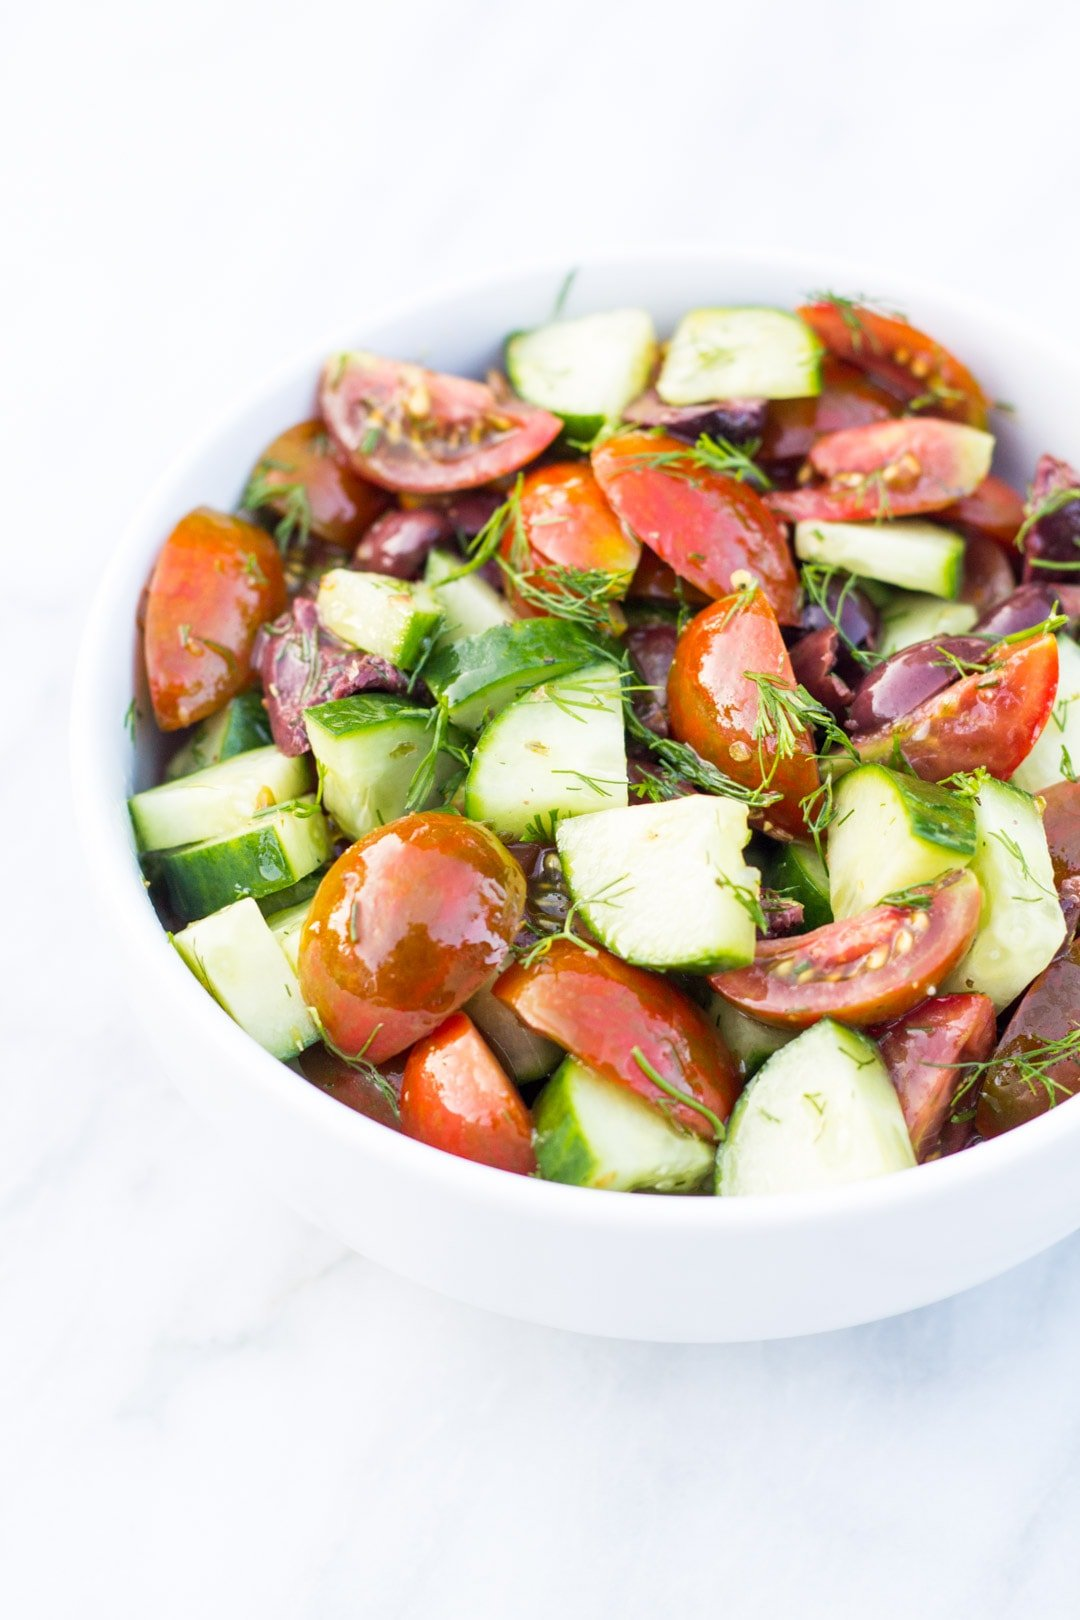 Bowl of quartered cherry tomatoes, quartered cucumber, fresh dill, and a light dressing.